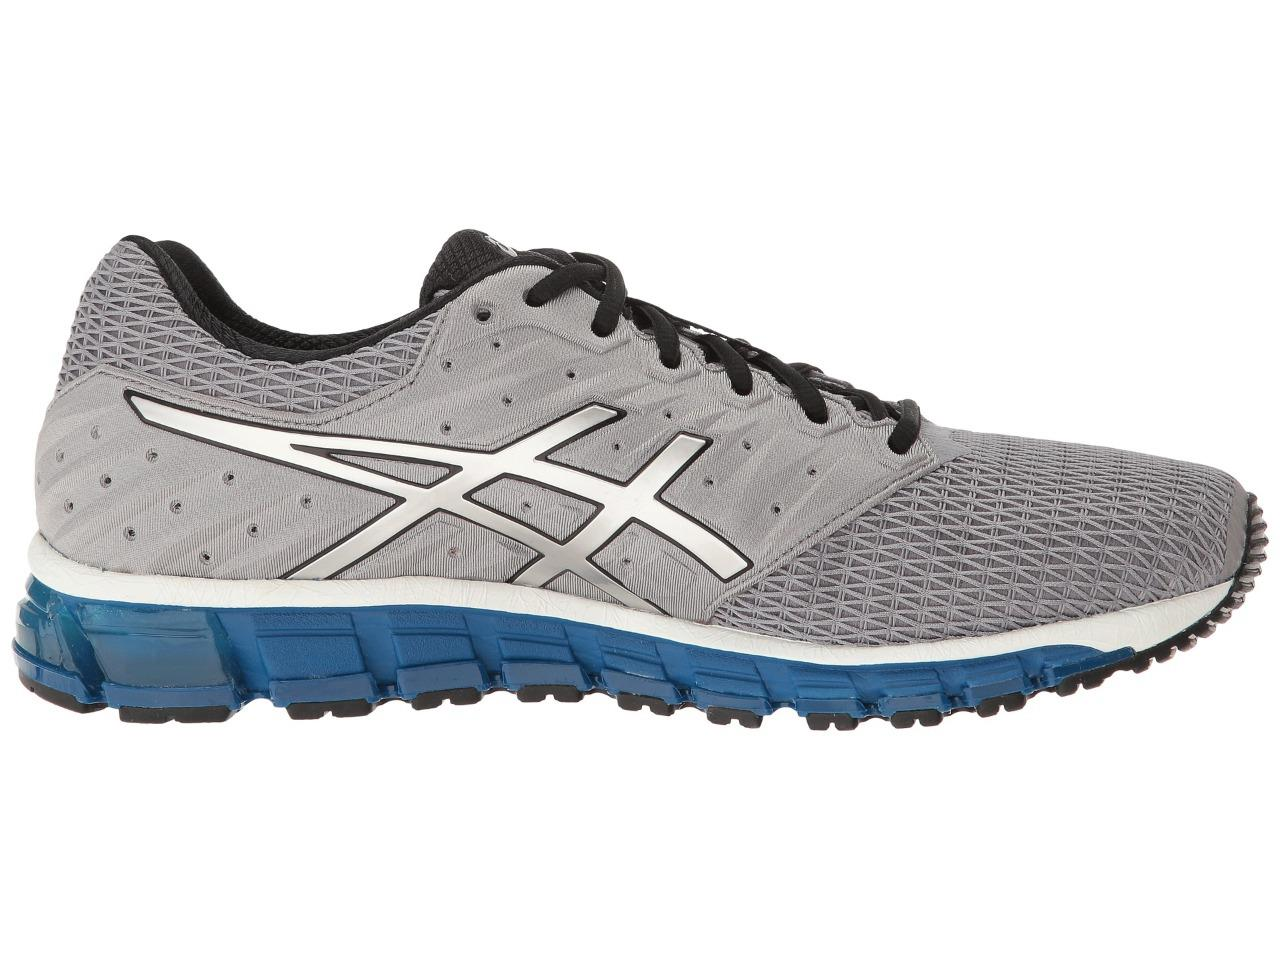 a080f6093f New ASICS Gel-Quantum 180 2 Running Shoes Men s Size 8.5 Silver Blue ...